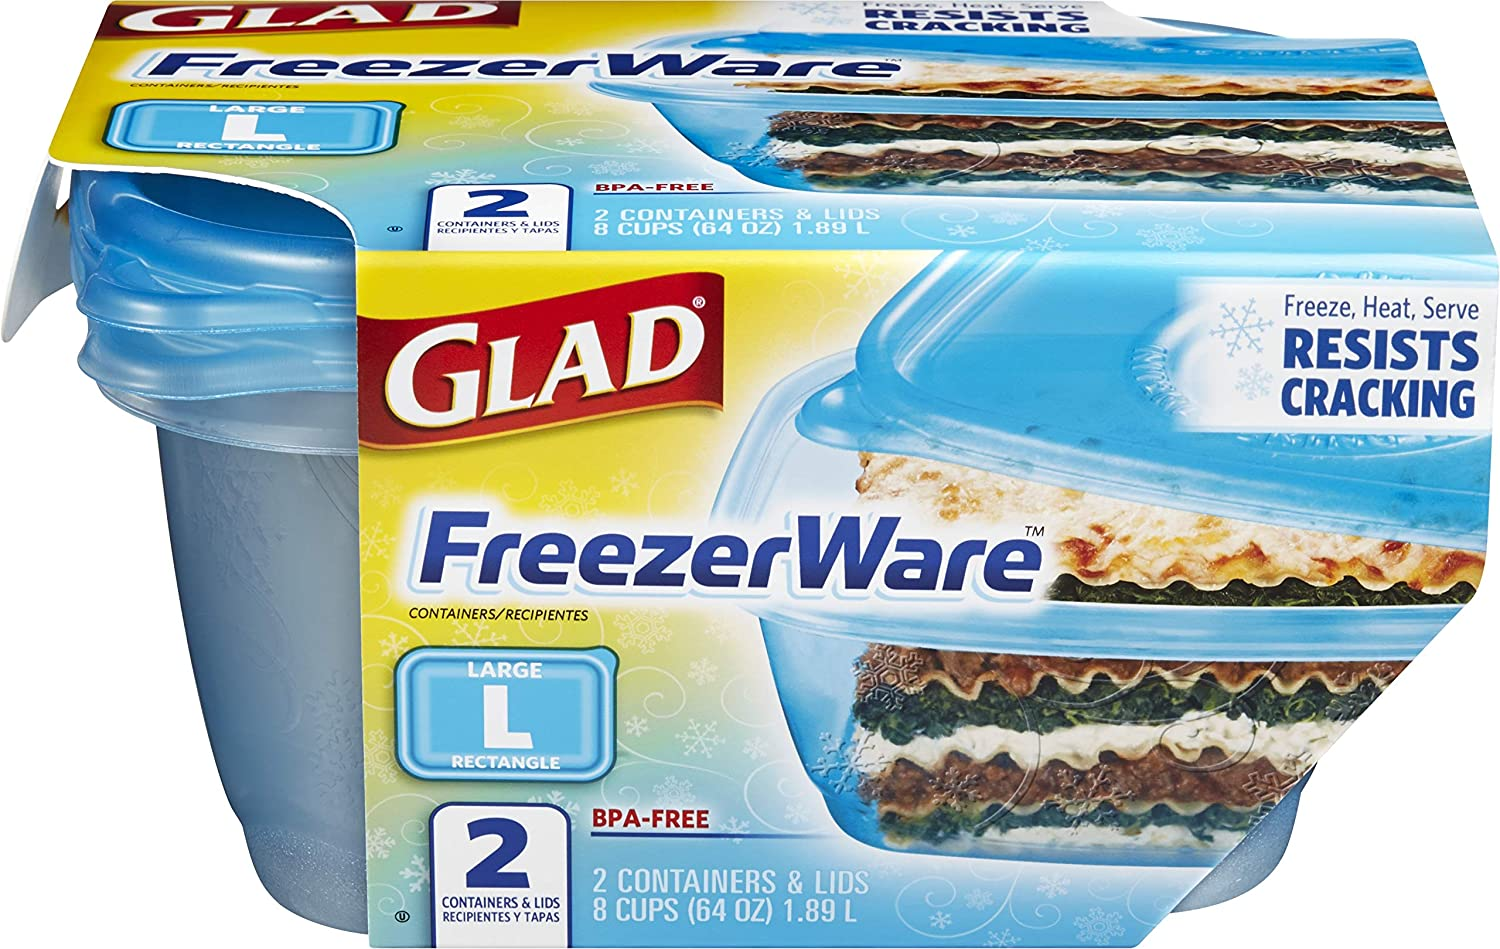 Gladware Freezerware Food Storage Containers, Large Rectangle Holds 64 Ounces of Food, 2 Count Set